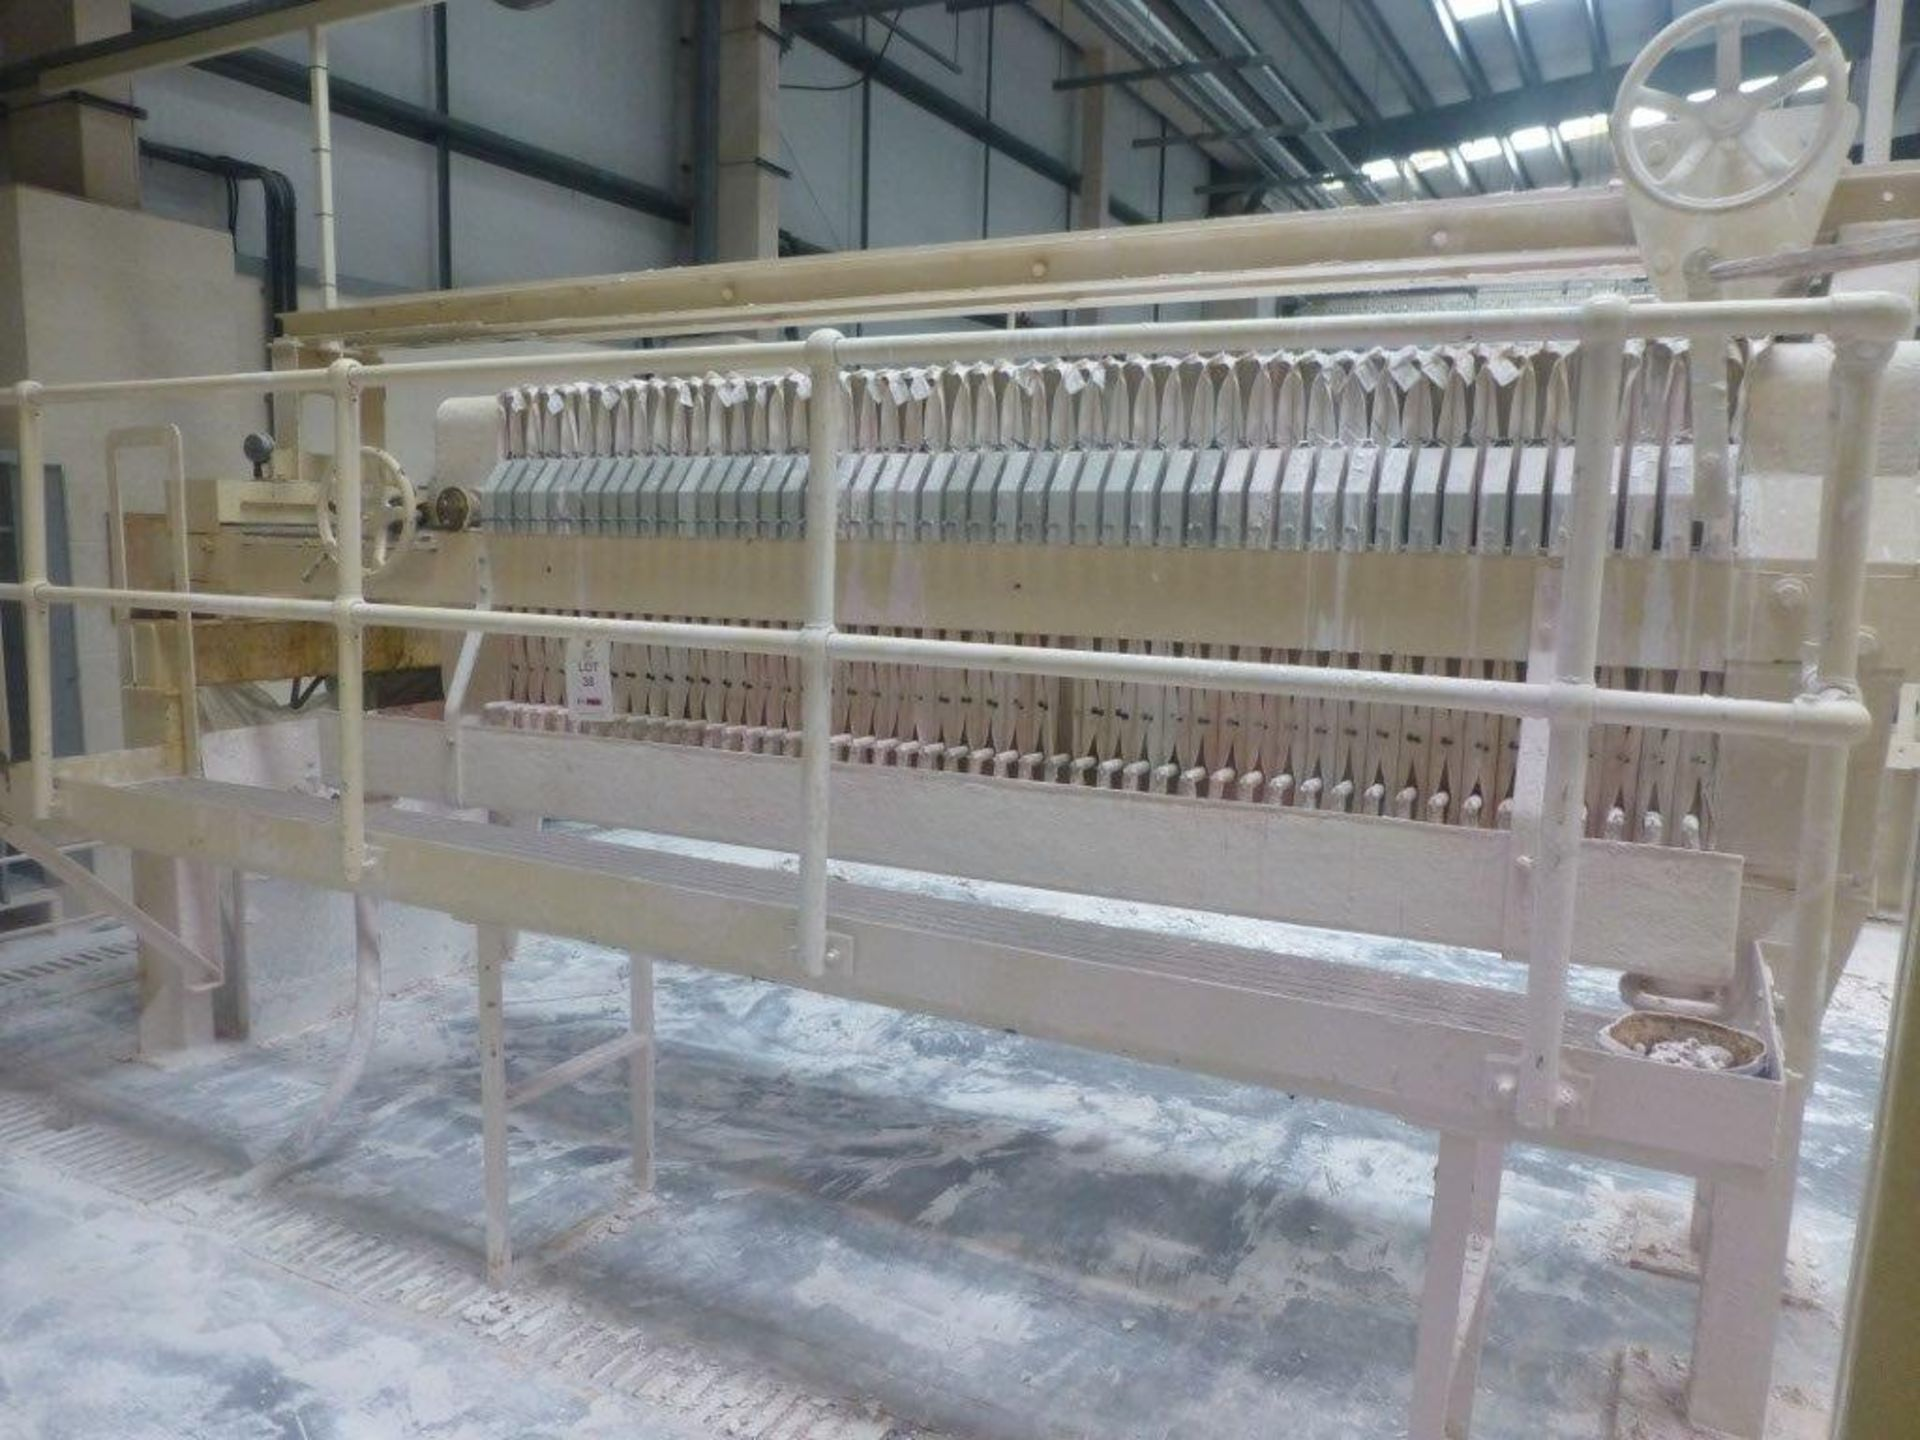 Lot 38 - 51 plate filter press, Plant No SHP7 Cream Press 2, overall length 4.9m with hydraulic power pack